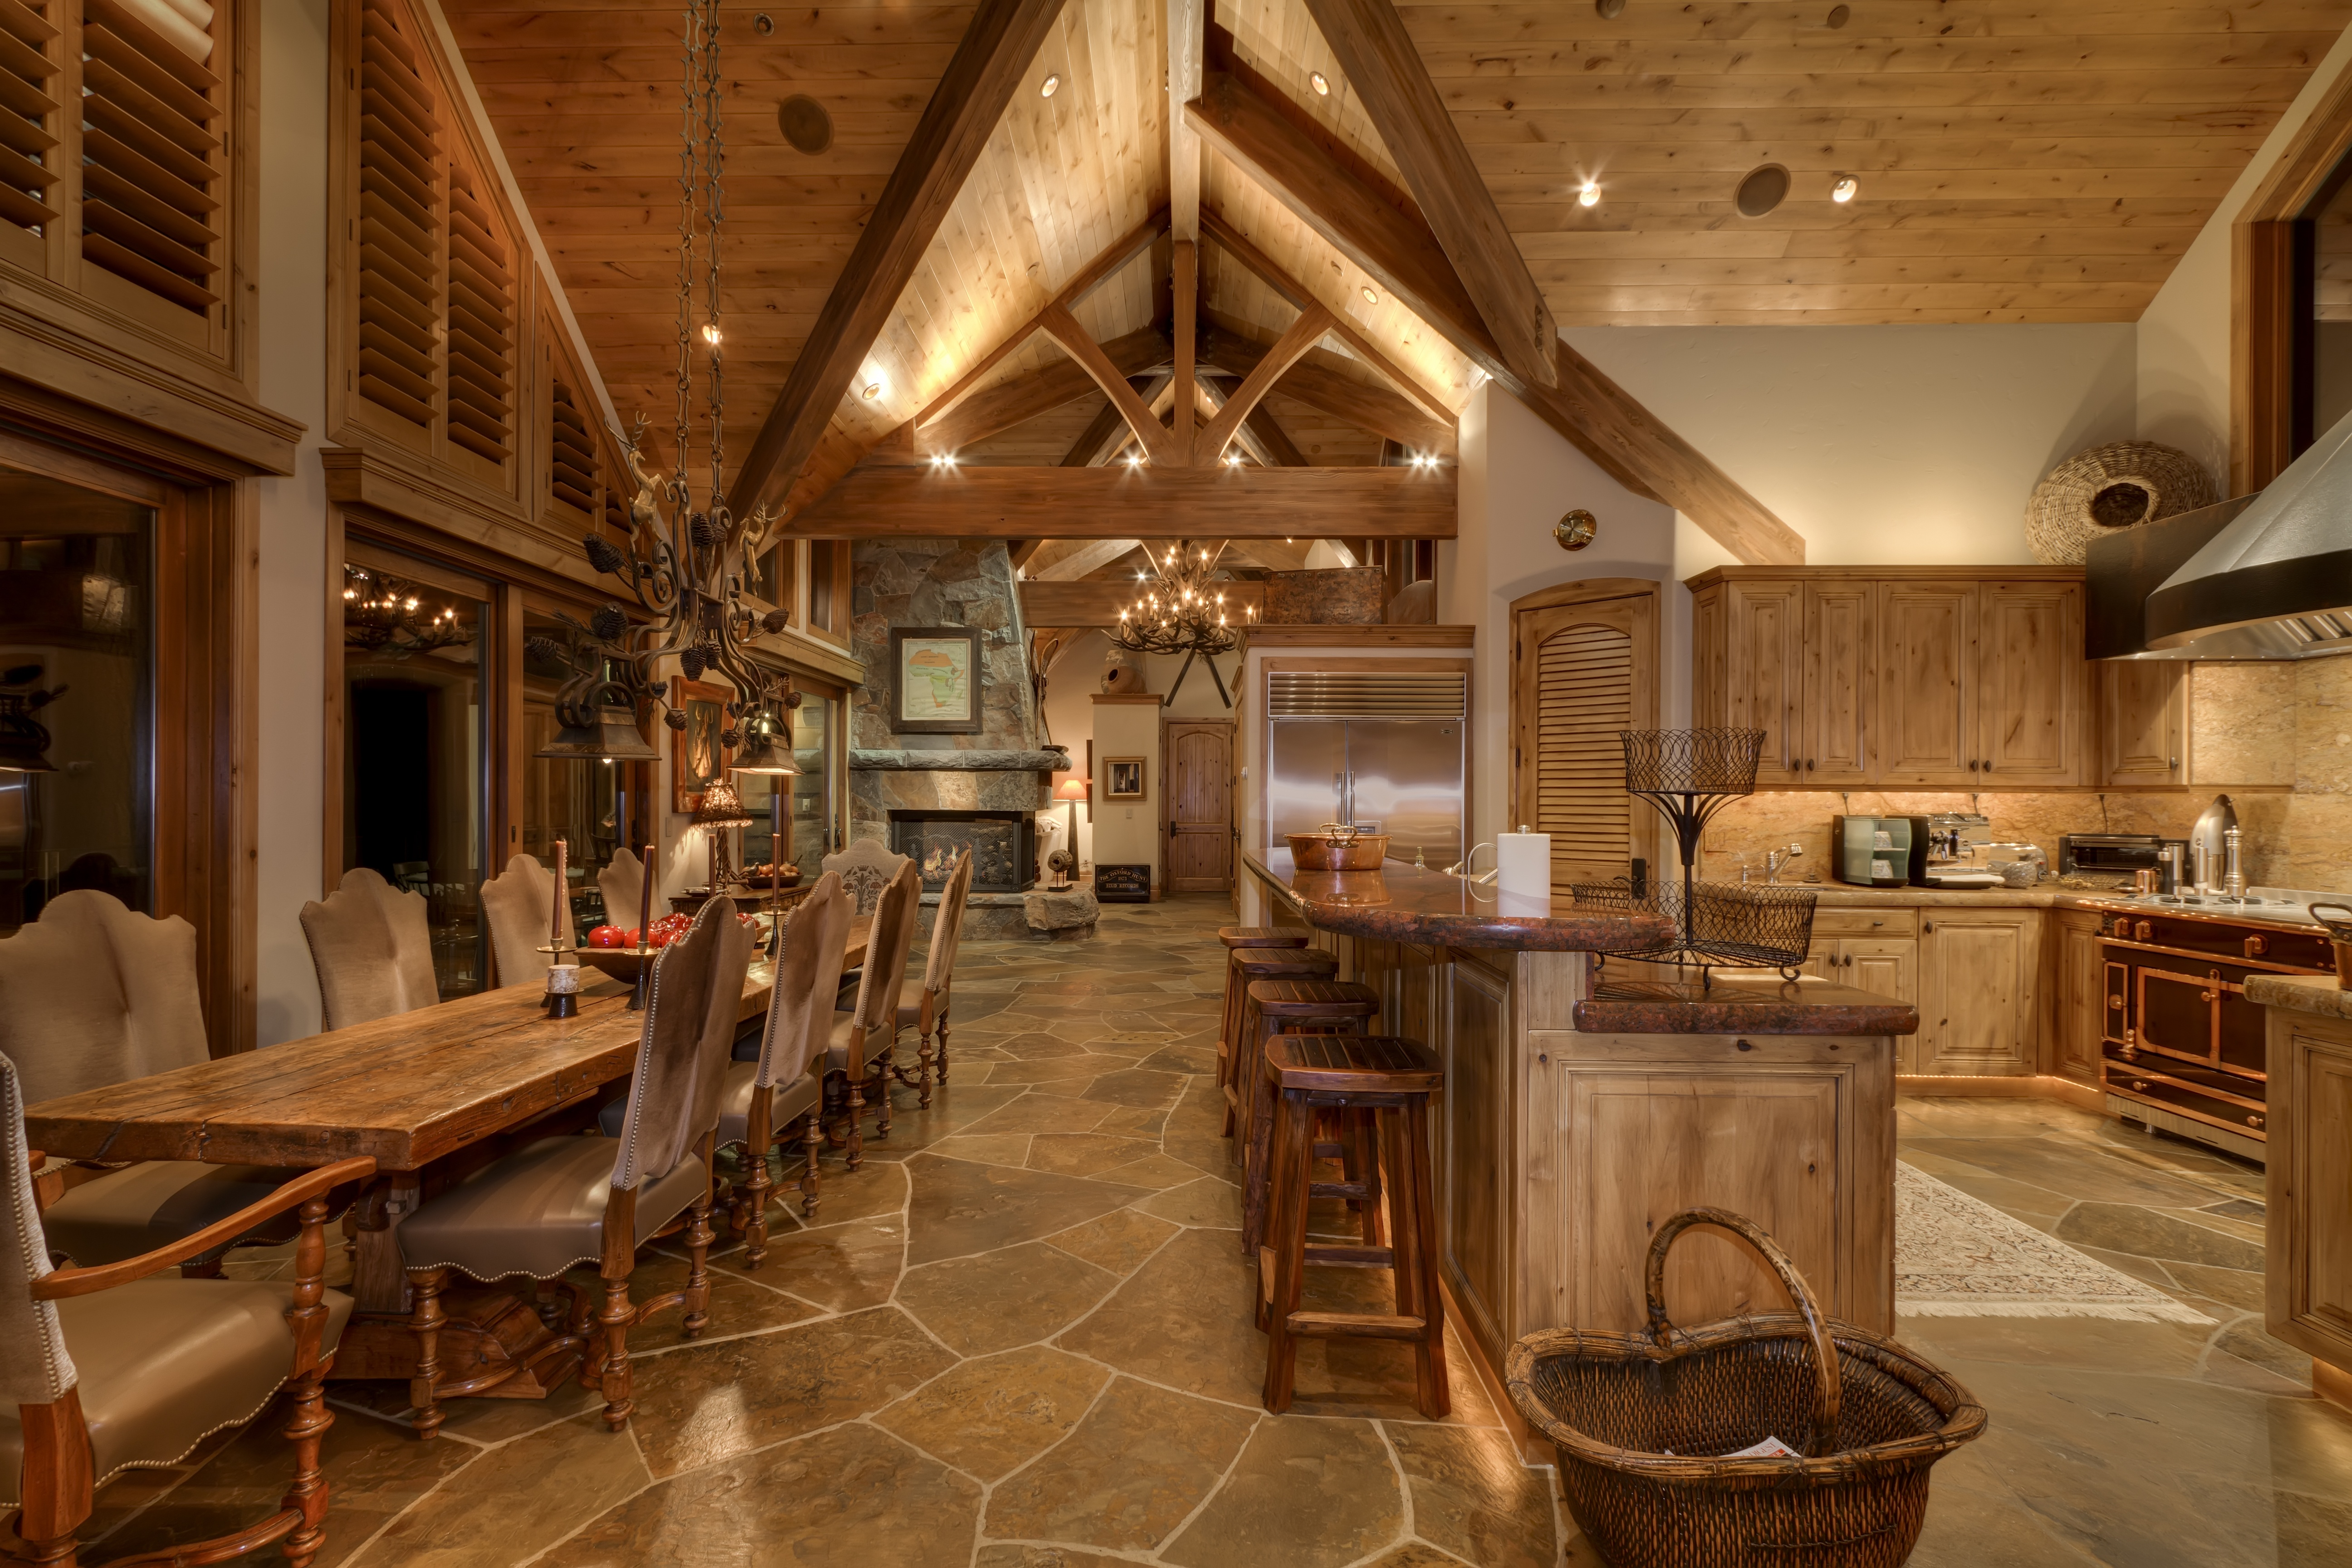 Houses With Big Kitchens For Sale